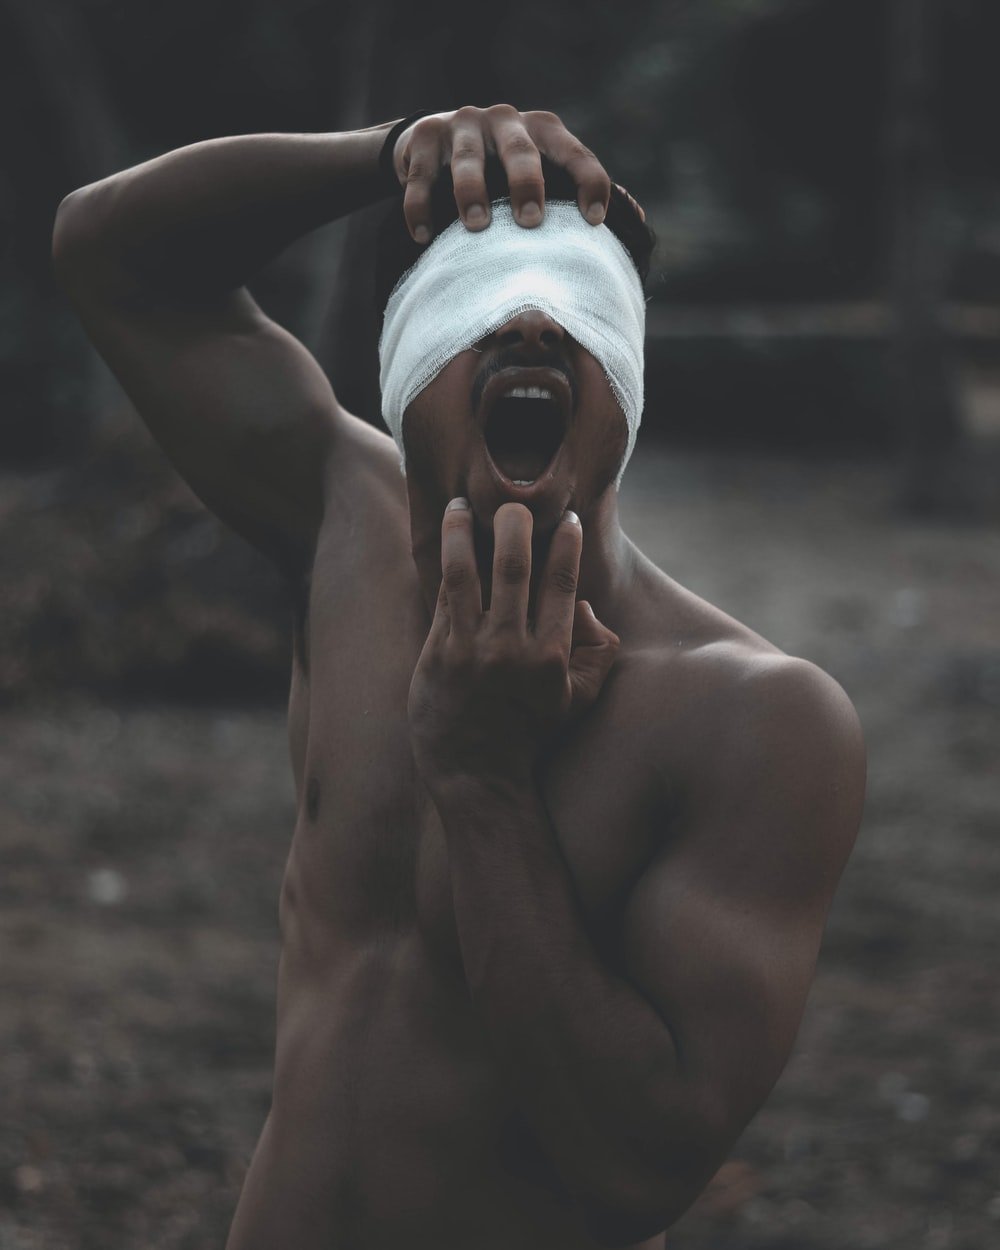 photo of topless man with bandage on his eyes